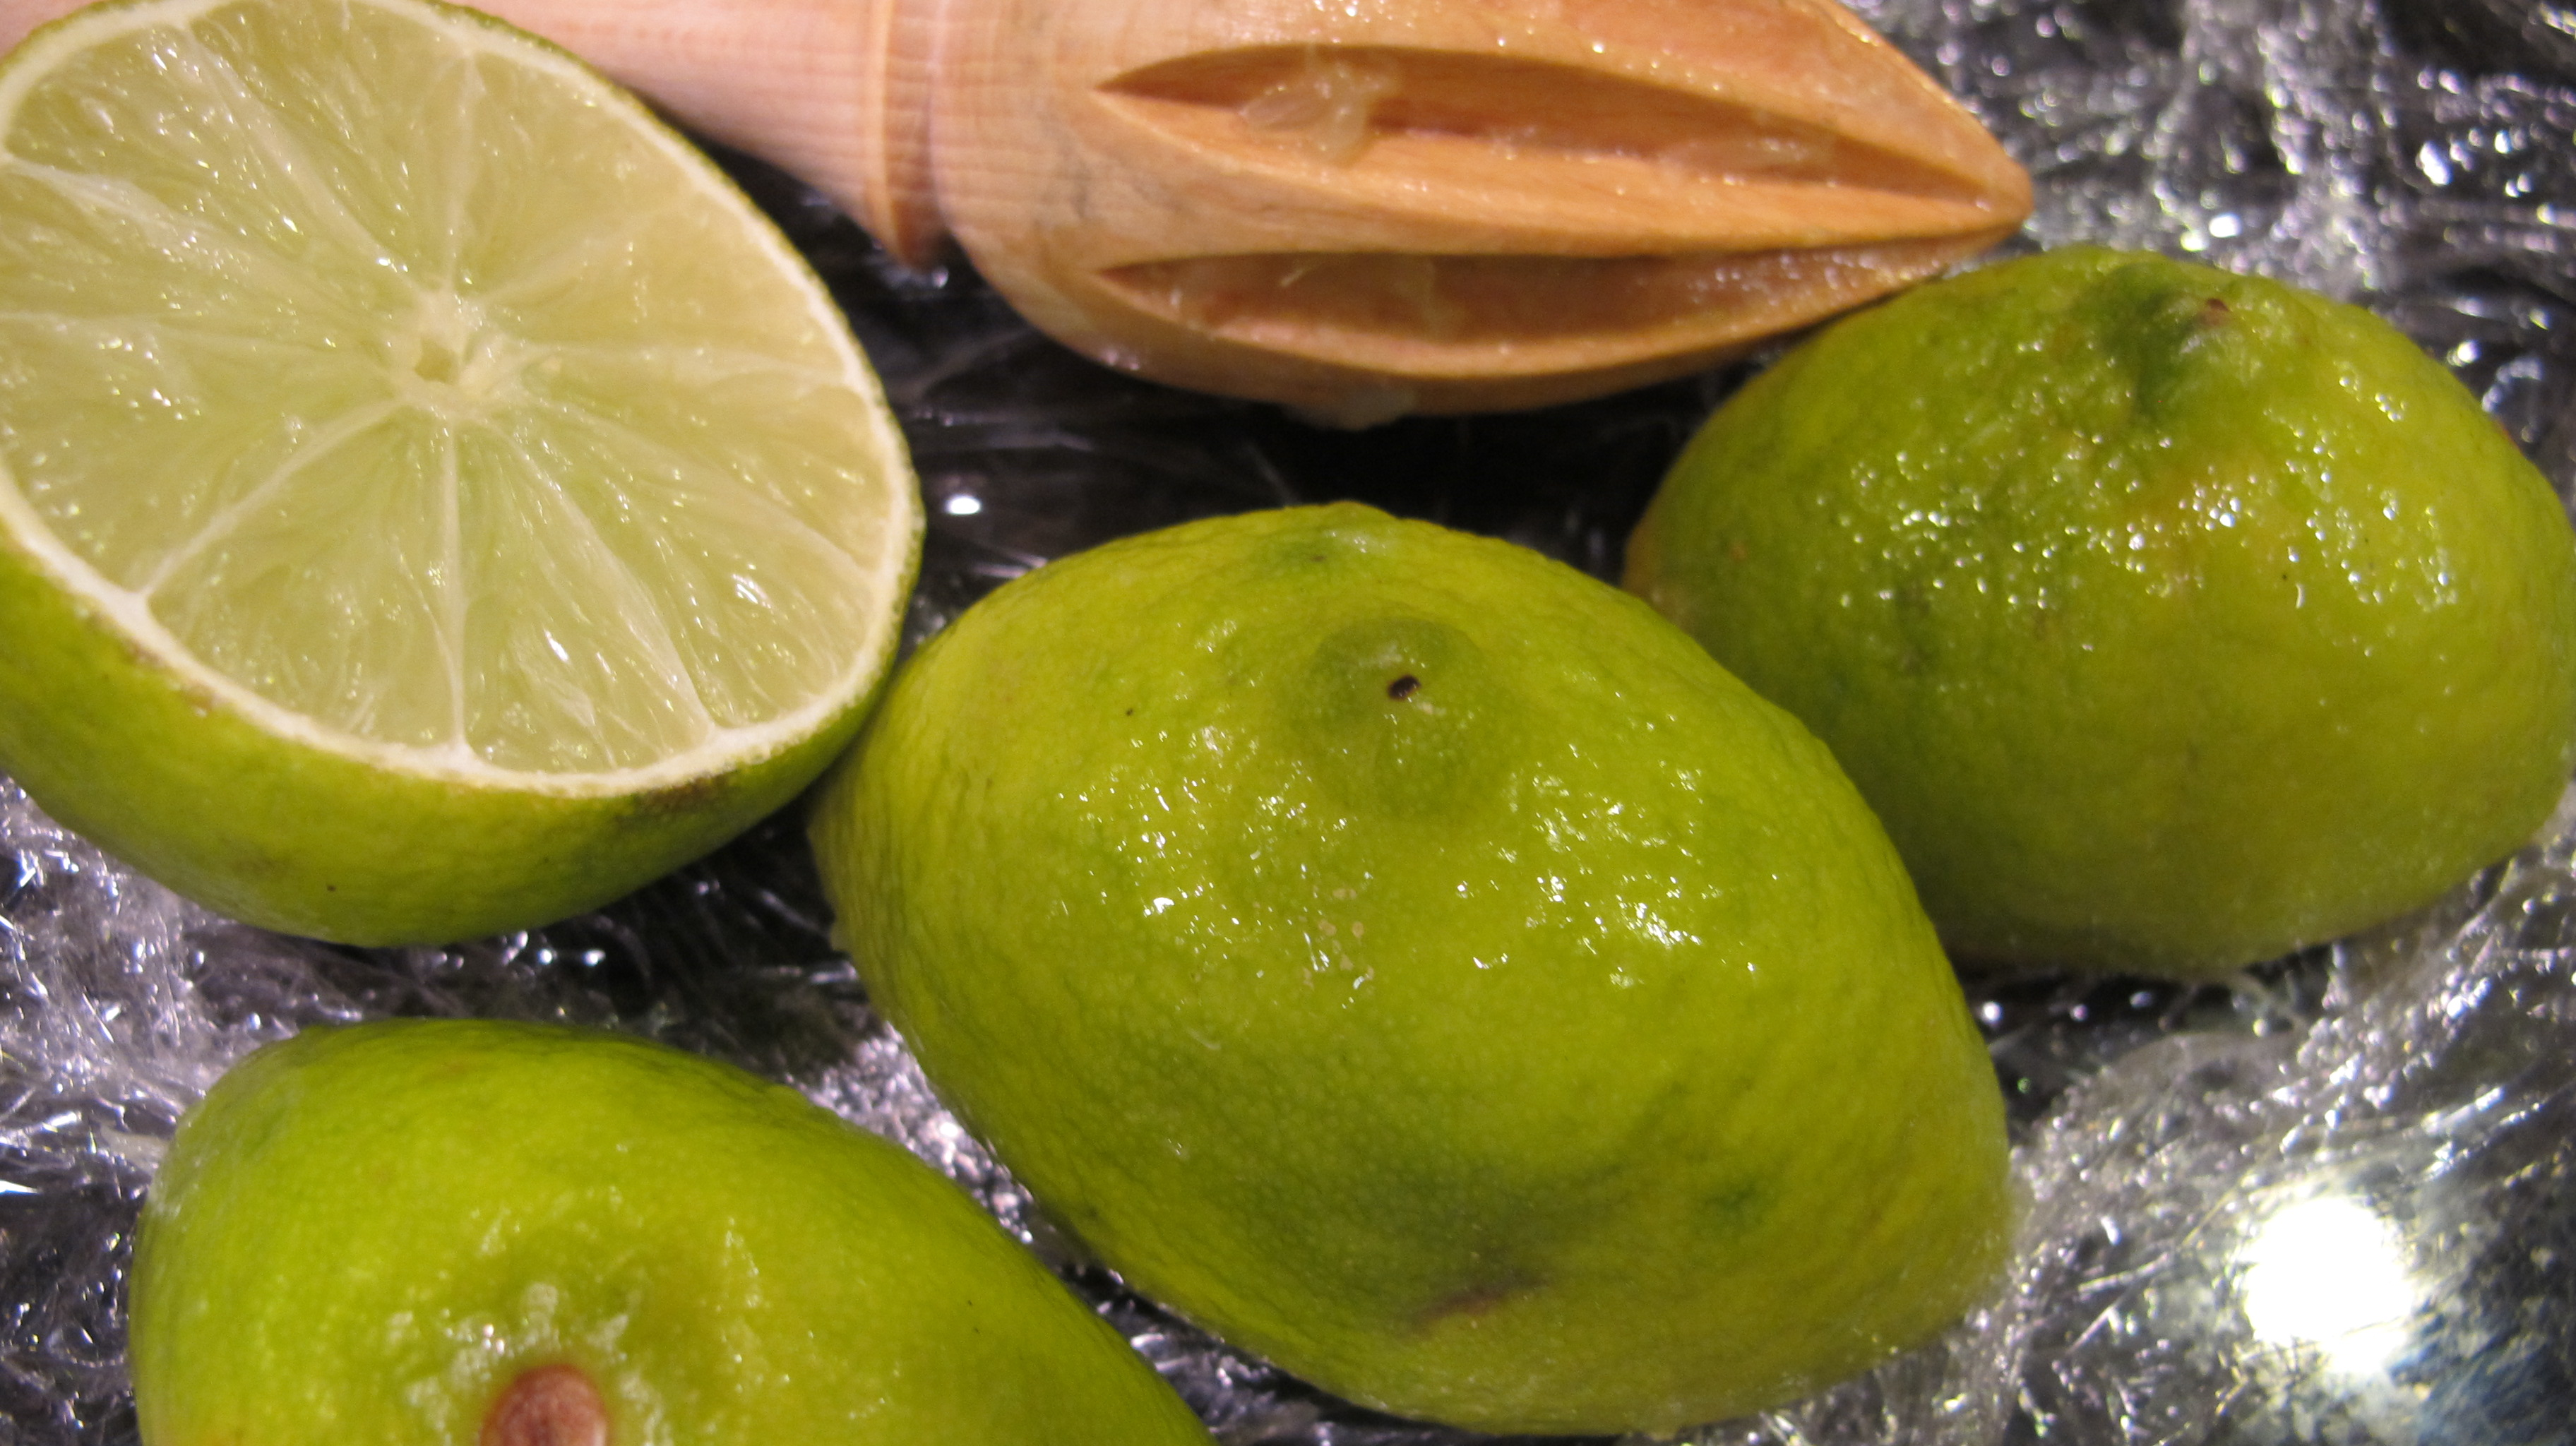 Limes to use in the vinaigrette.